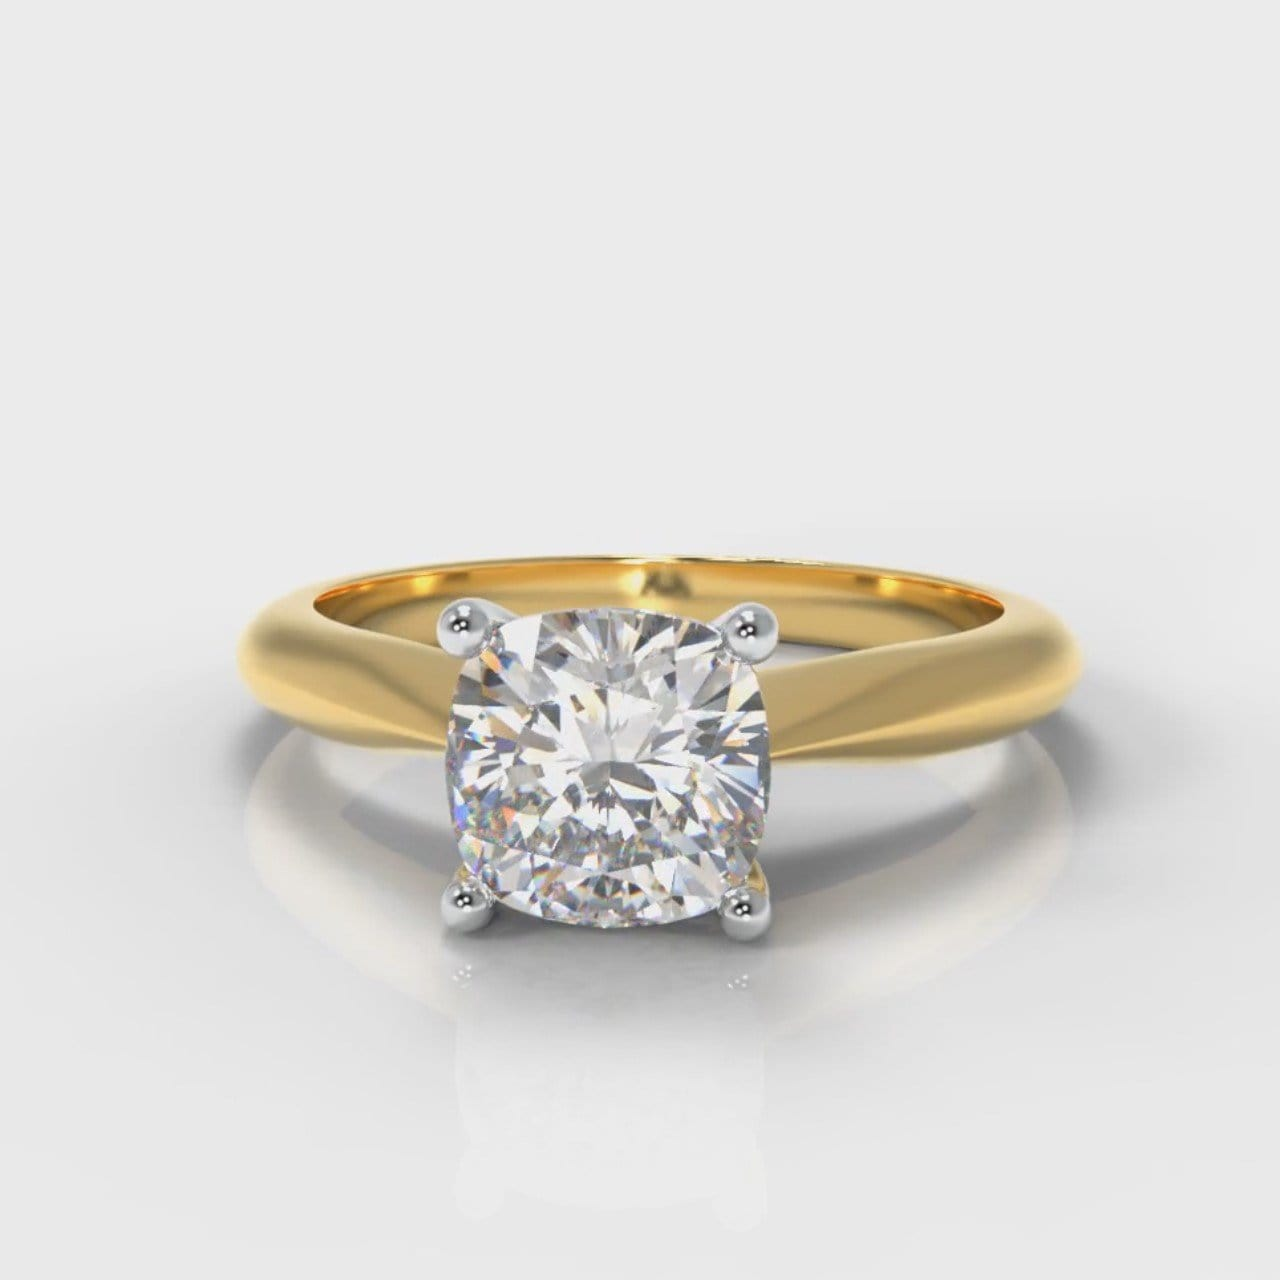 Carrée Solitaire Cushion Cut Diamond Engagement Ring - Yellow Gold